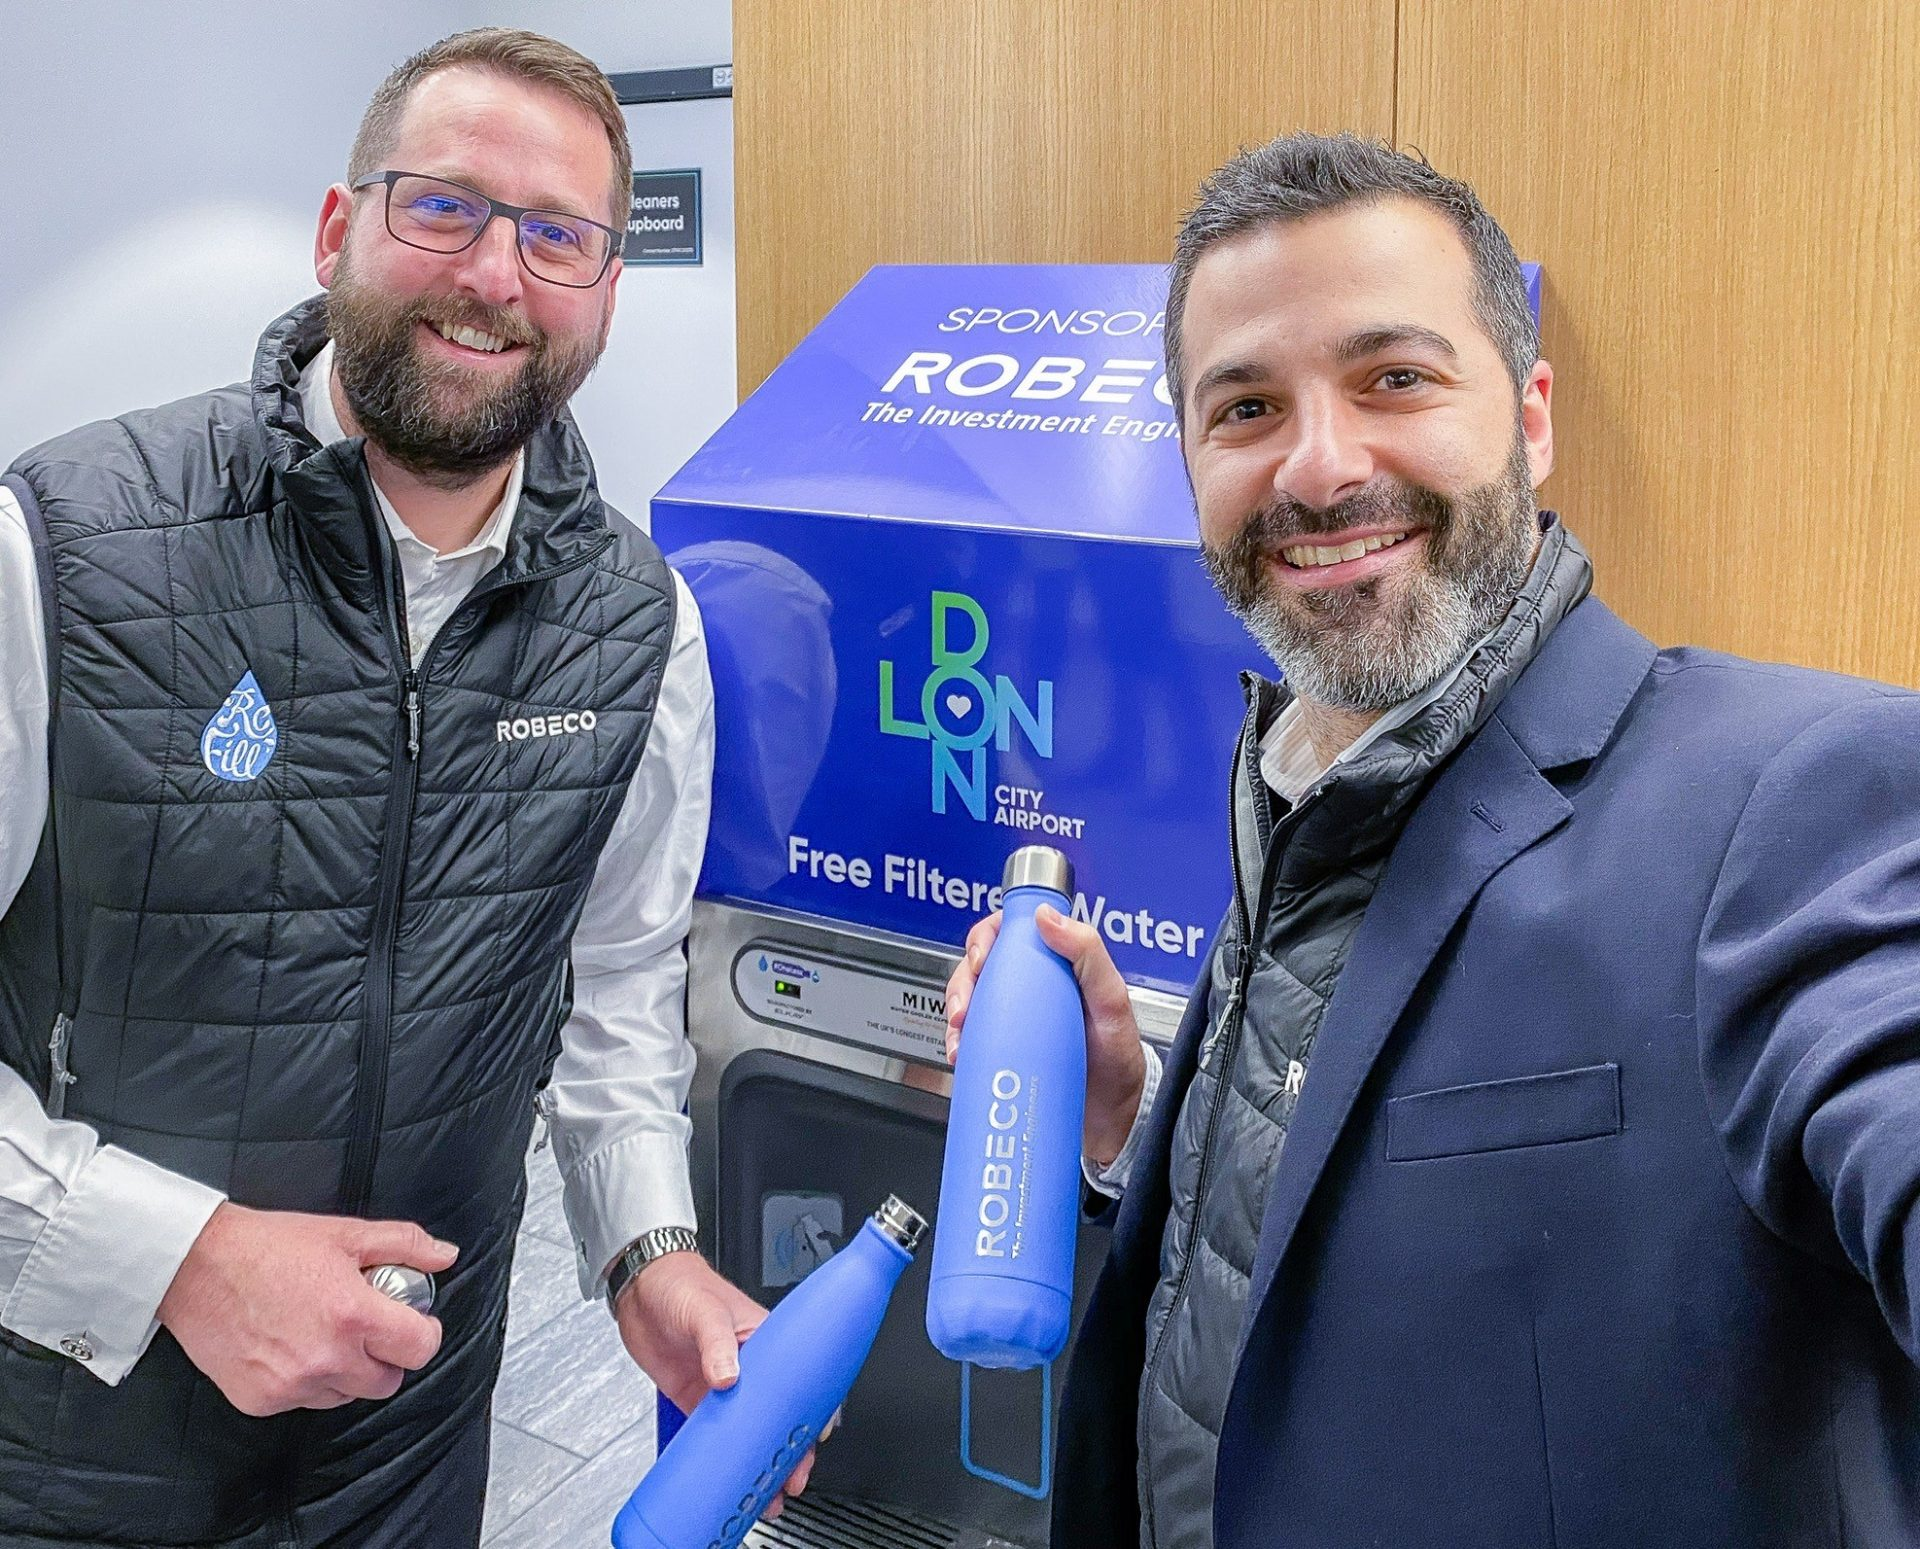 Happy People Refilling From The New Branded Bottle Filling Station At The Airport